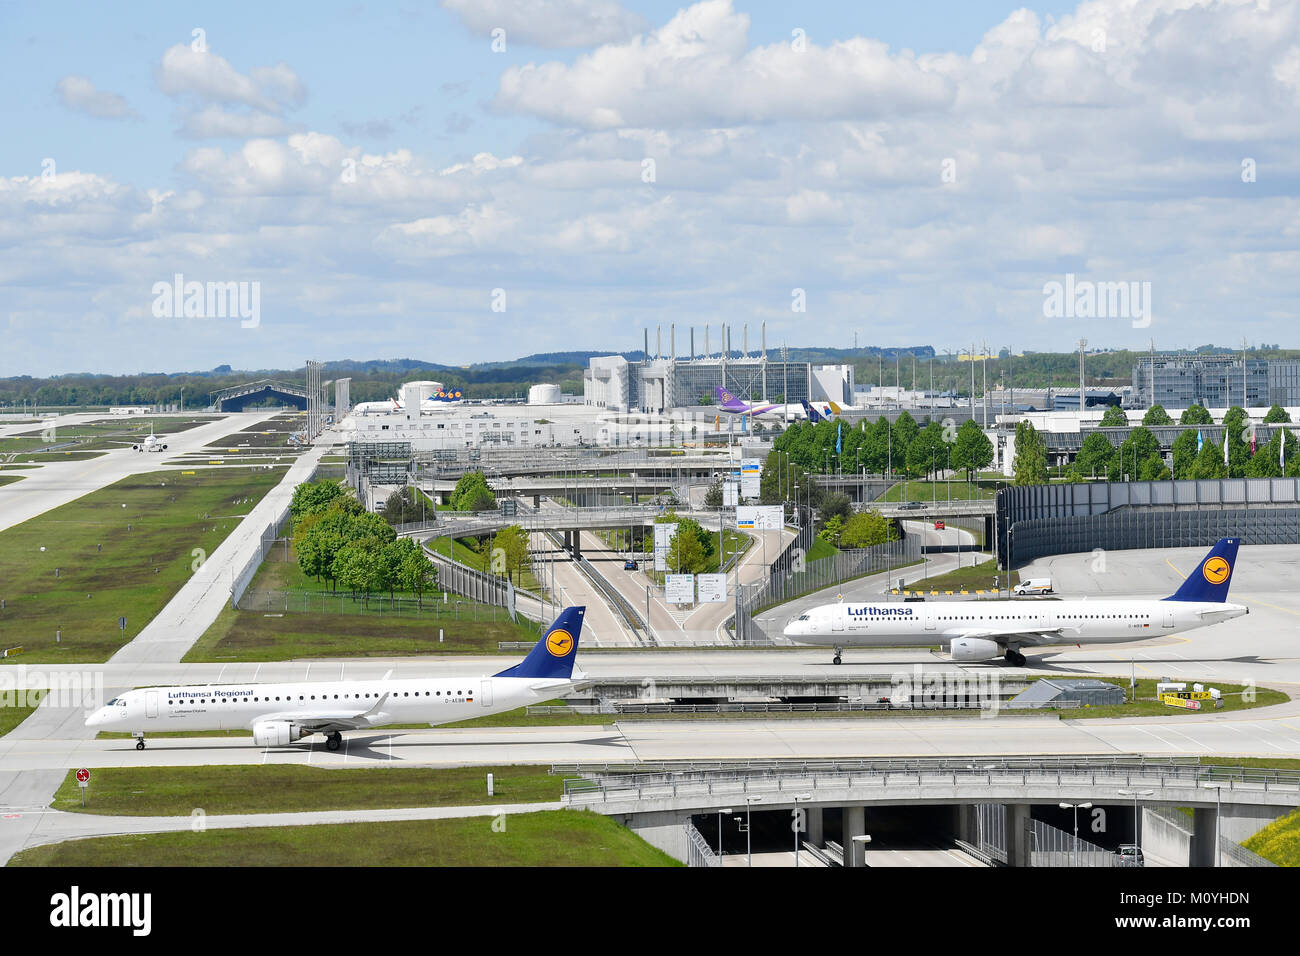 Lufthansa (Embraer ERJ-195LR and Airbus A321),passenger aircraft taxiing to runway,Munich Airport,Upper Bavaria,Germany - Stock Image